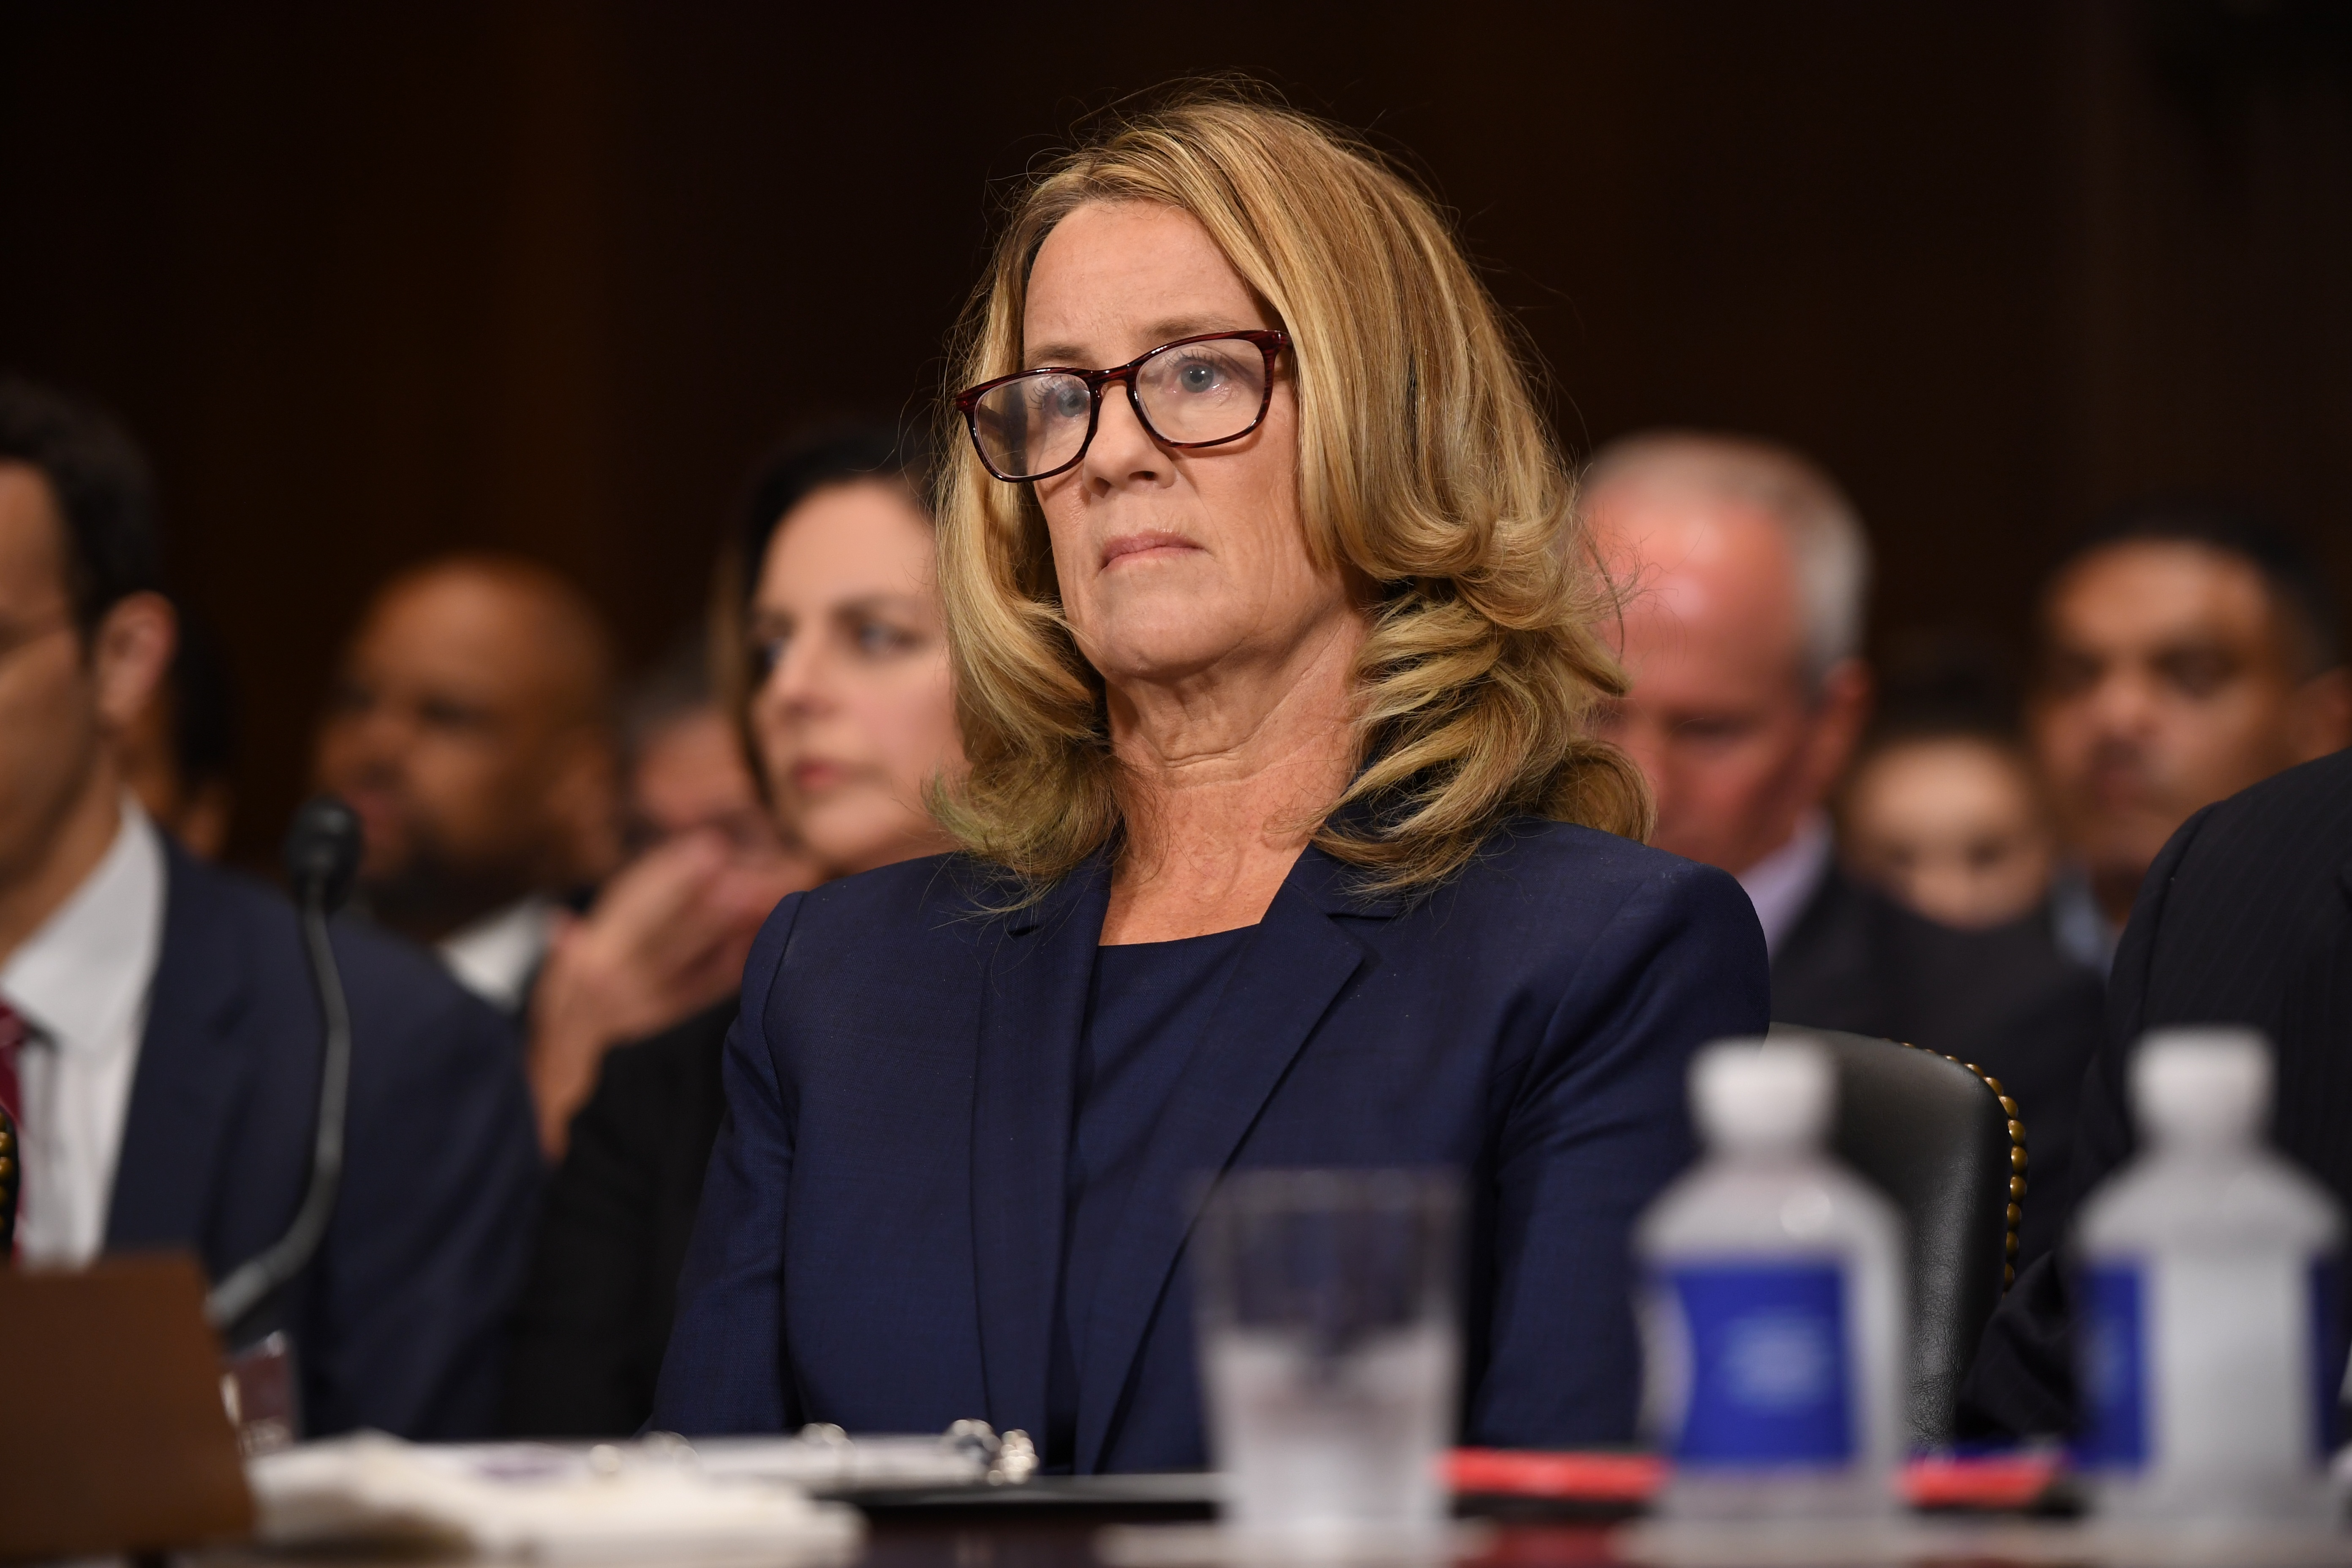 Christine Blasey Ford, testifies before the US Senate Judiciary Committee in the Dirksen Senate Office Building on Capitol Hill September 27, 2018 in Washington, DC. A professor at Palo Alto University and a research psychologist at the Stanford University School of Medicine, Ford has accused Supreme Court nominee Judge Brett Kavanaugh of sexually assaulting her during a party in 1982 when they were high school students in suburban Maryland.